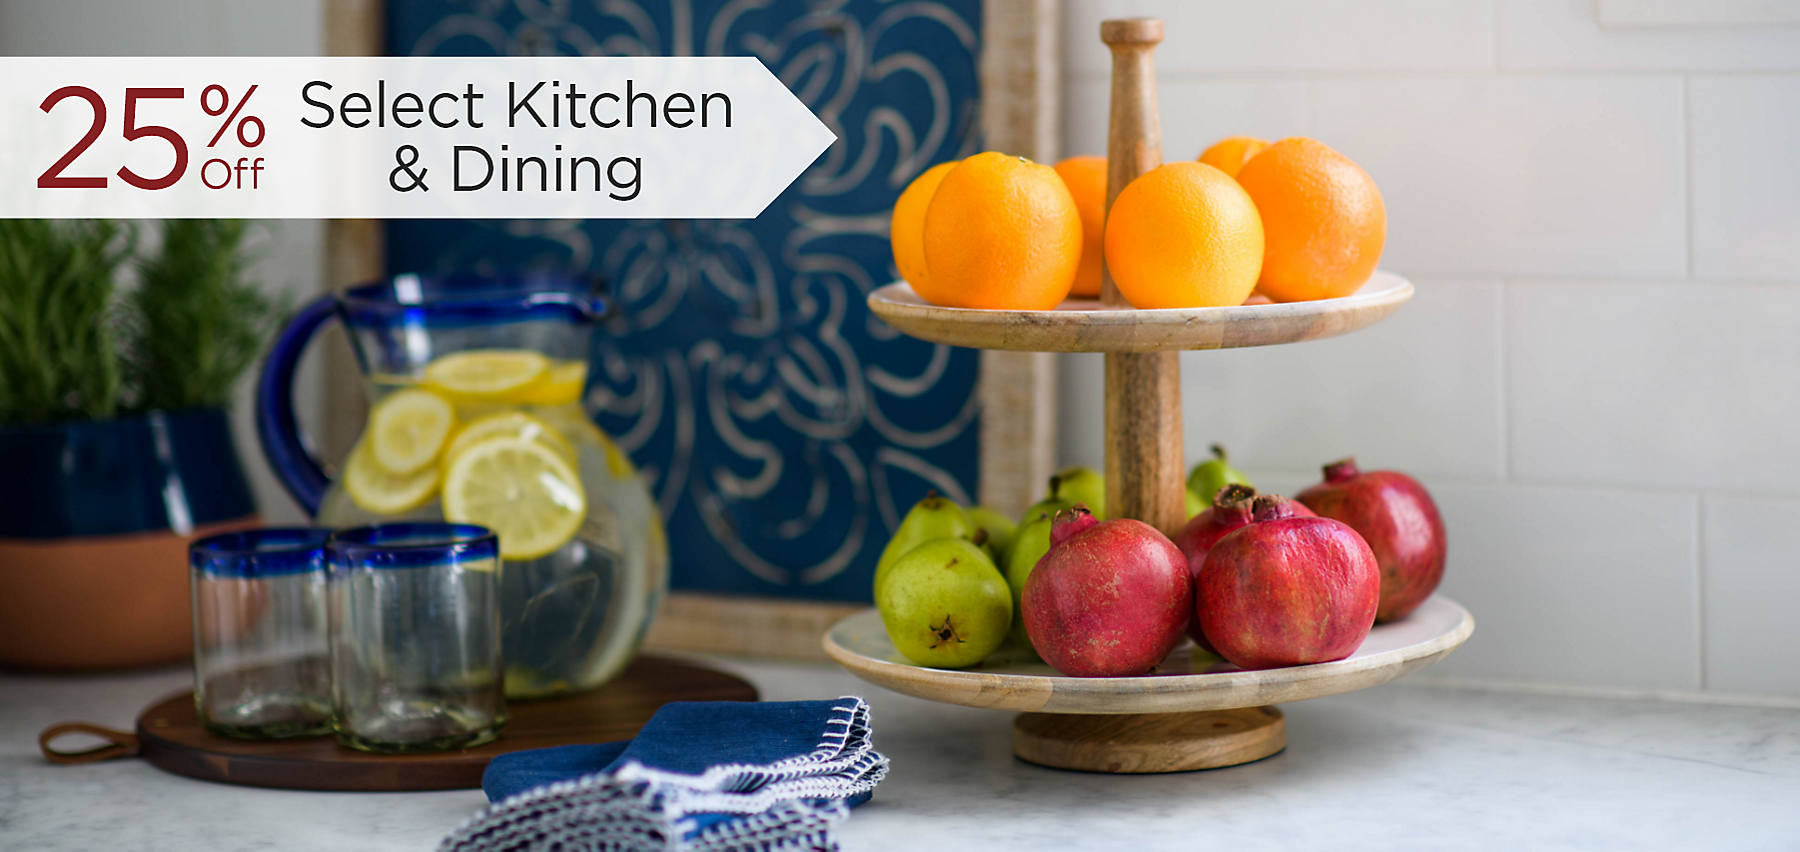 Select Kitchen & Dining